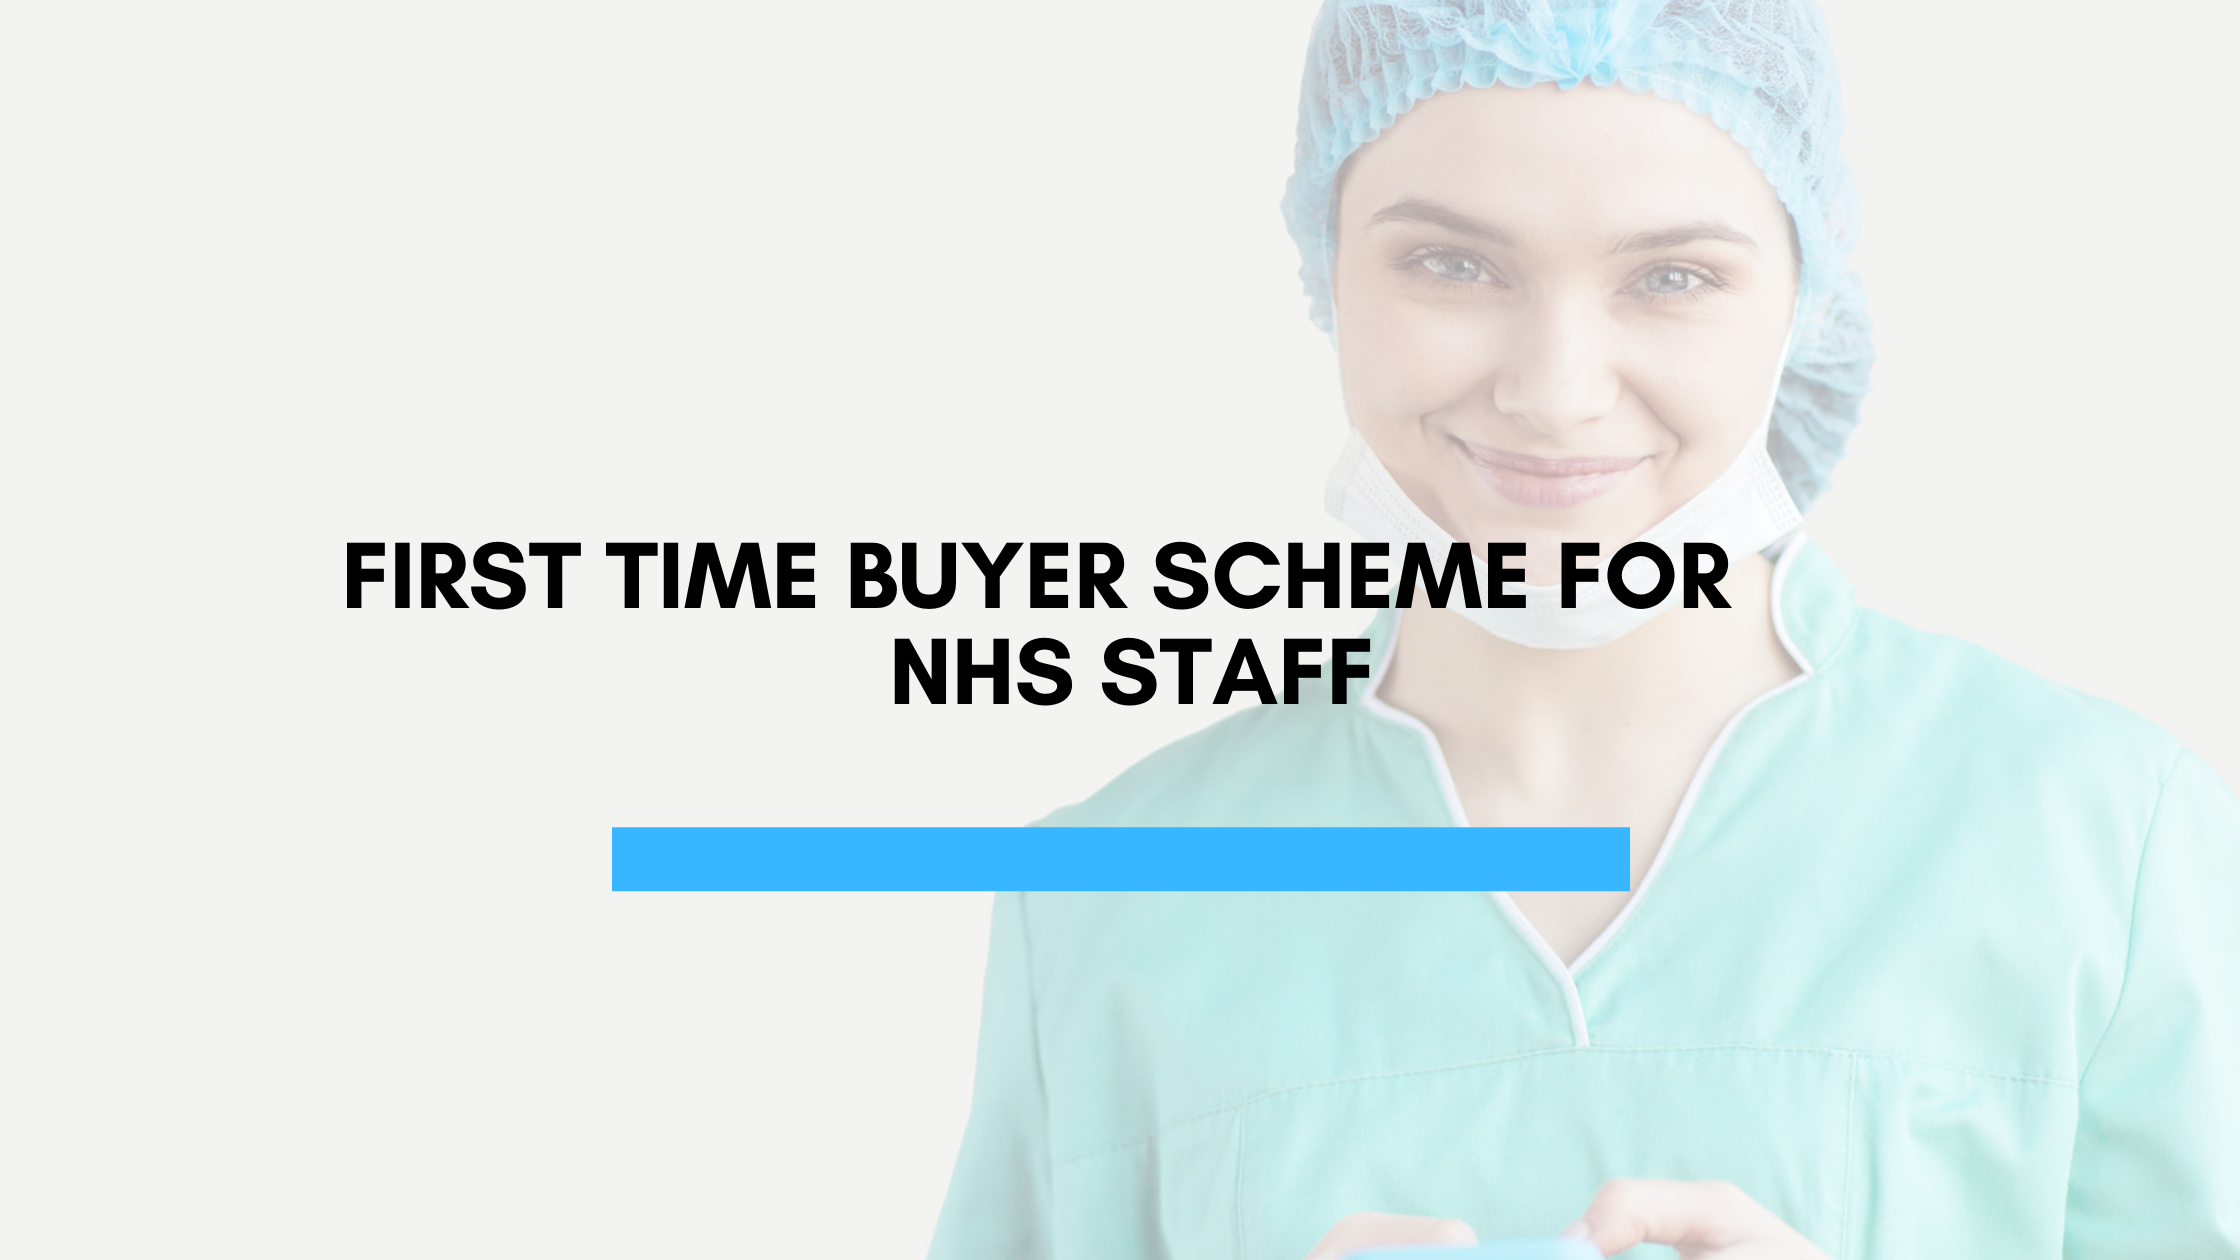 First Time Buyer Scheme For NHS Staff